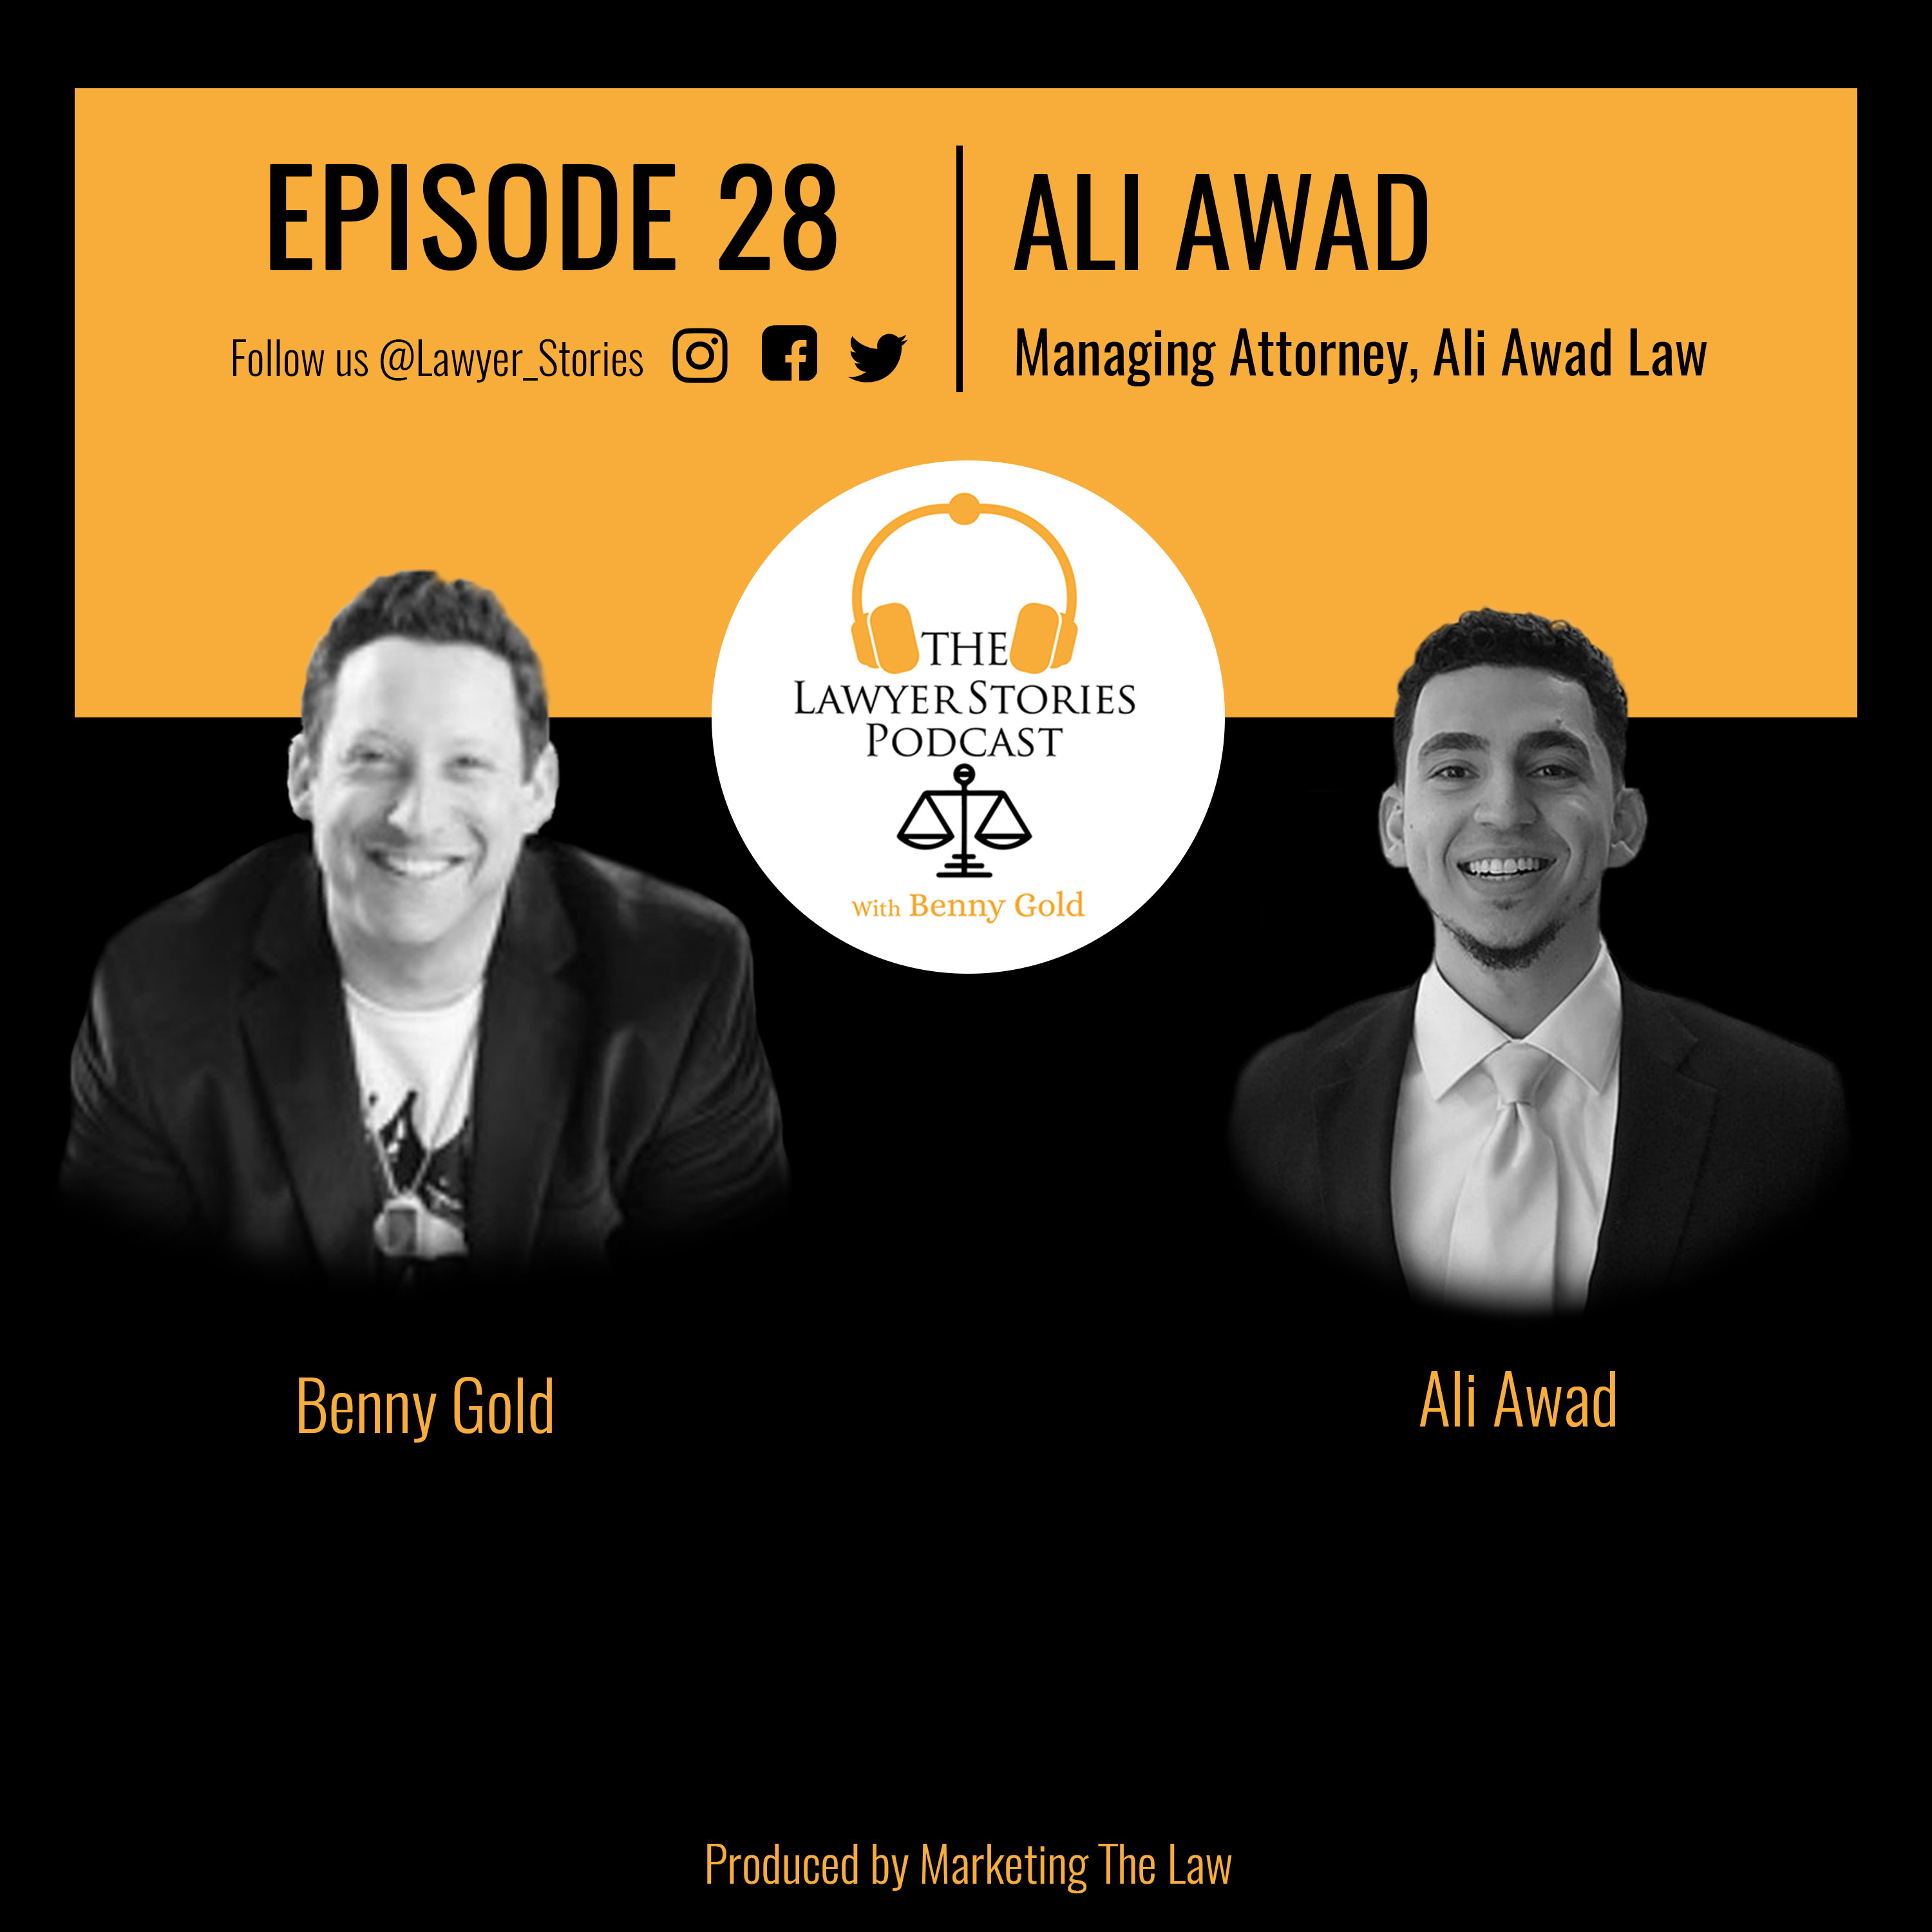 The Lawyer Stories Podcast Episode 28 featuring Ali Awad, Founding Attorney of Ali Awad Law